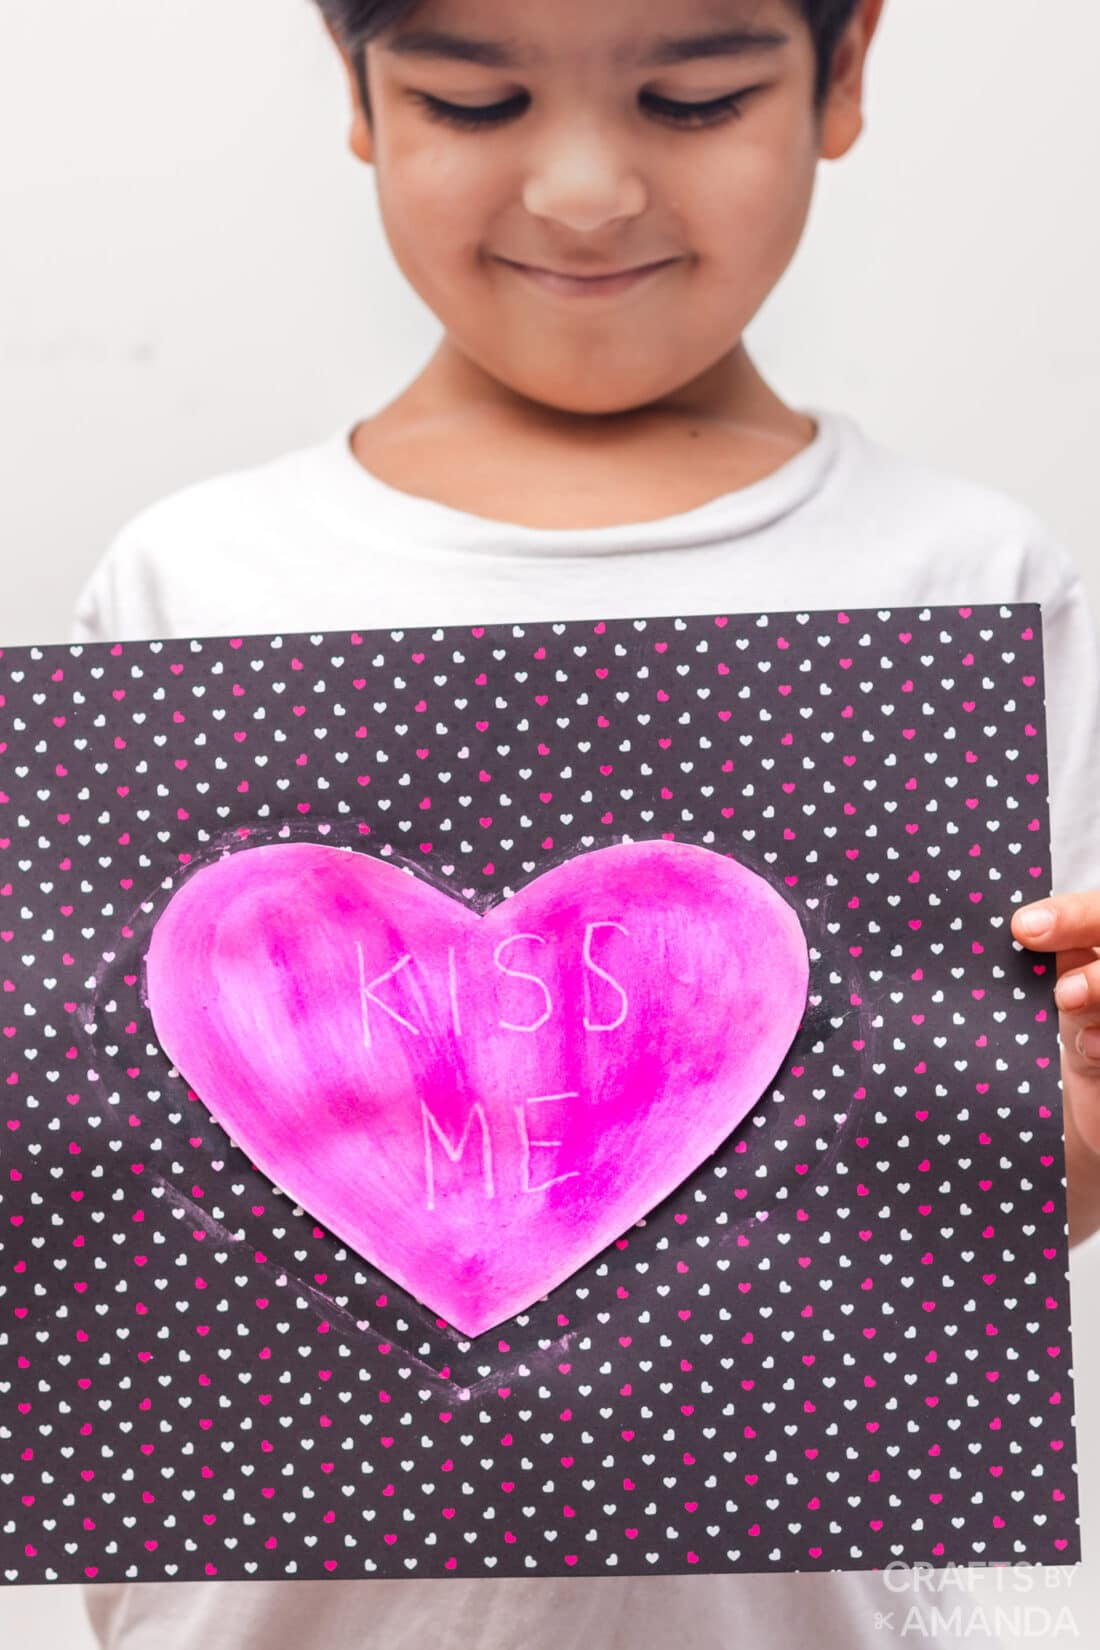 chil holding heart shaped painting